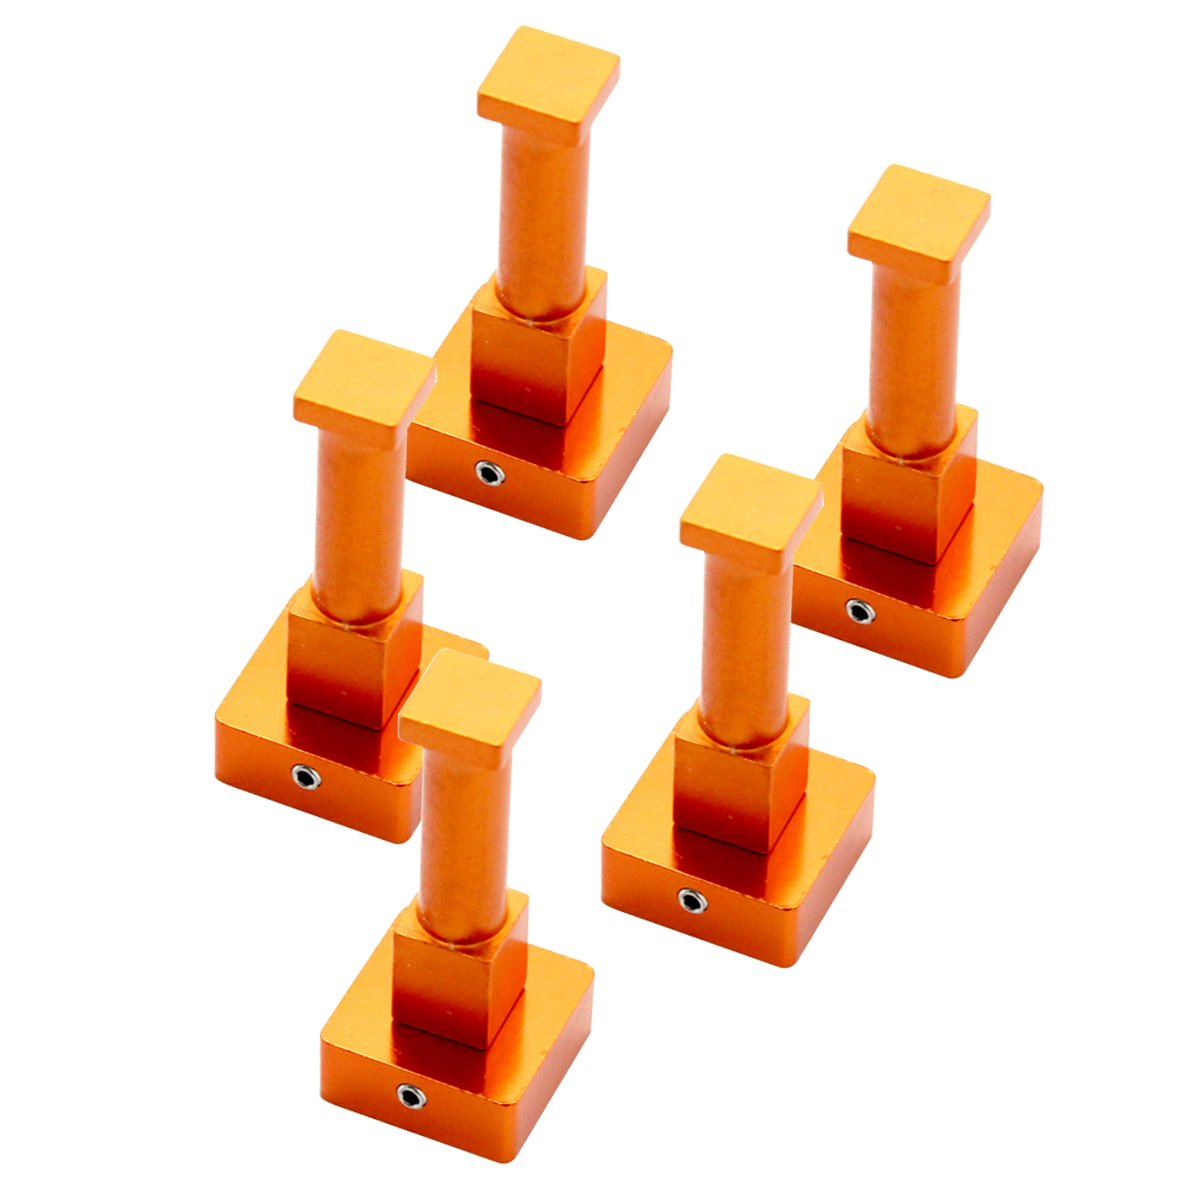 bouti1583 Aluminum Colorful Square Hooks Holder Hanger Key Coat Hat Rack Robe Orange